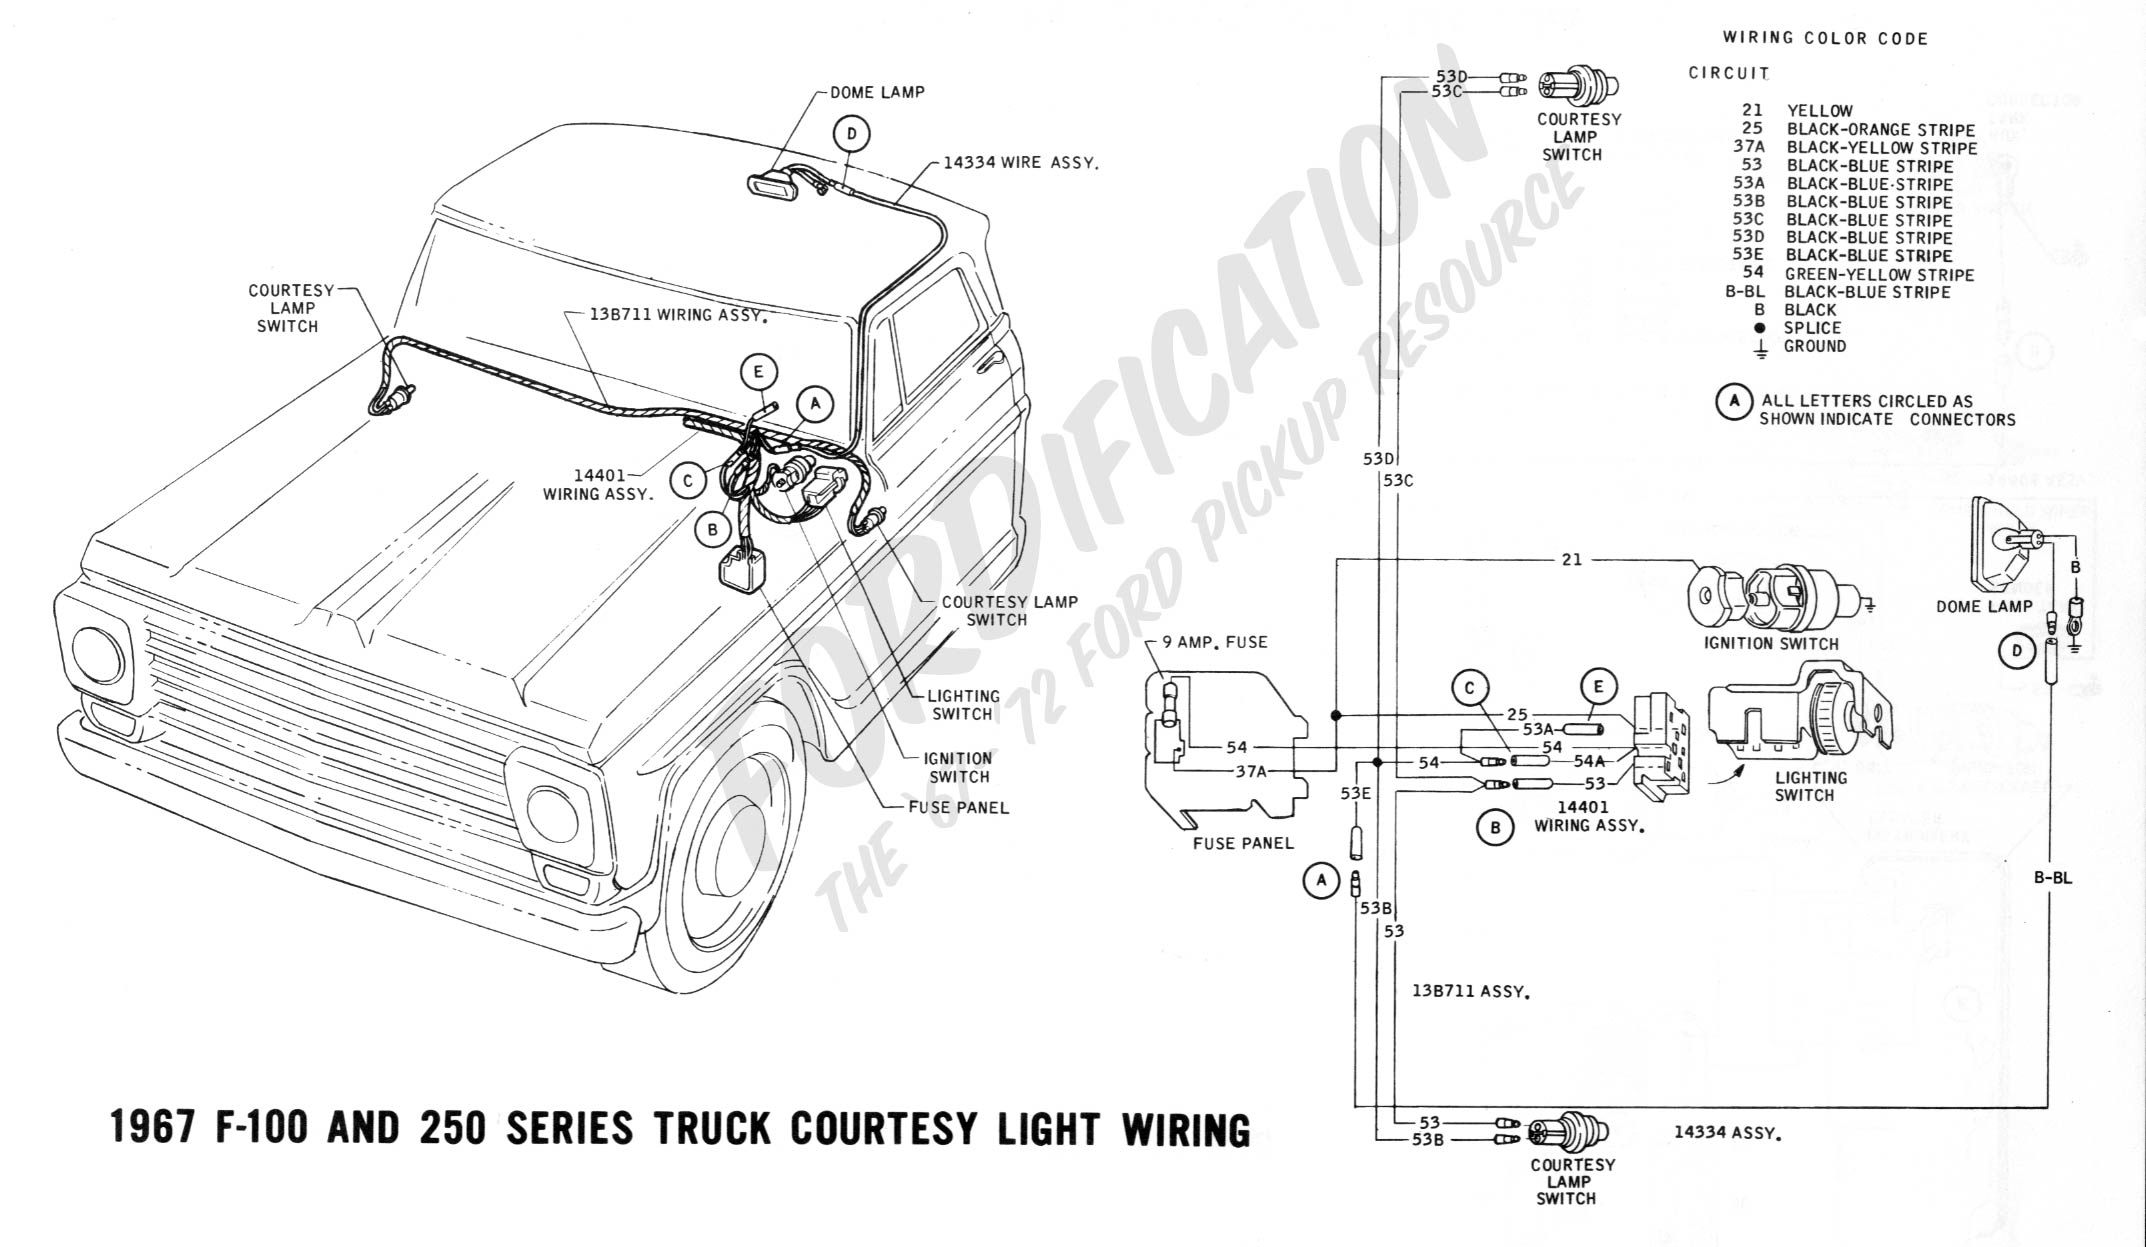 wiring 1967courtesylight ford truck technical drawings and schematics section h wiring 1970 ford mustang ignition switch wiring diagram at bayanpartner.co